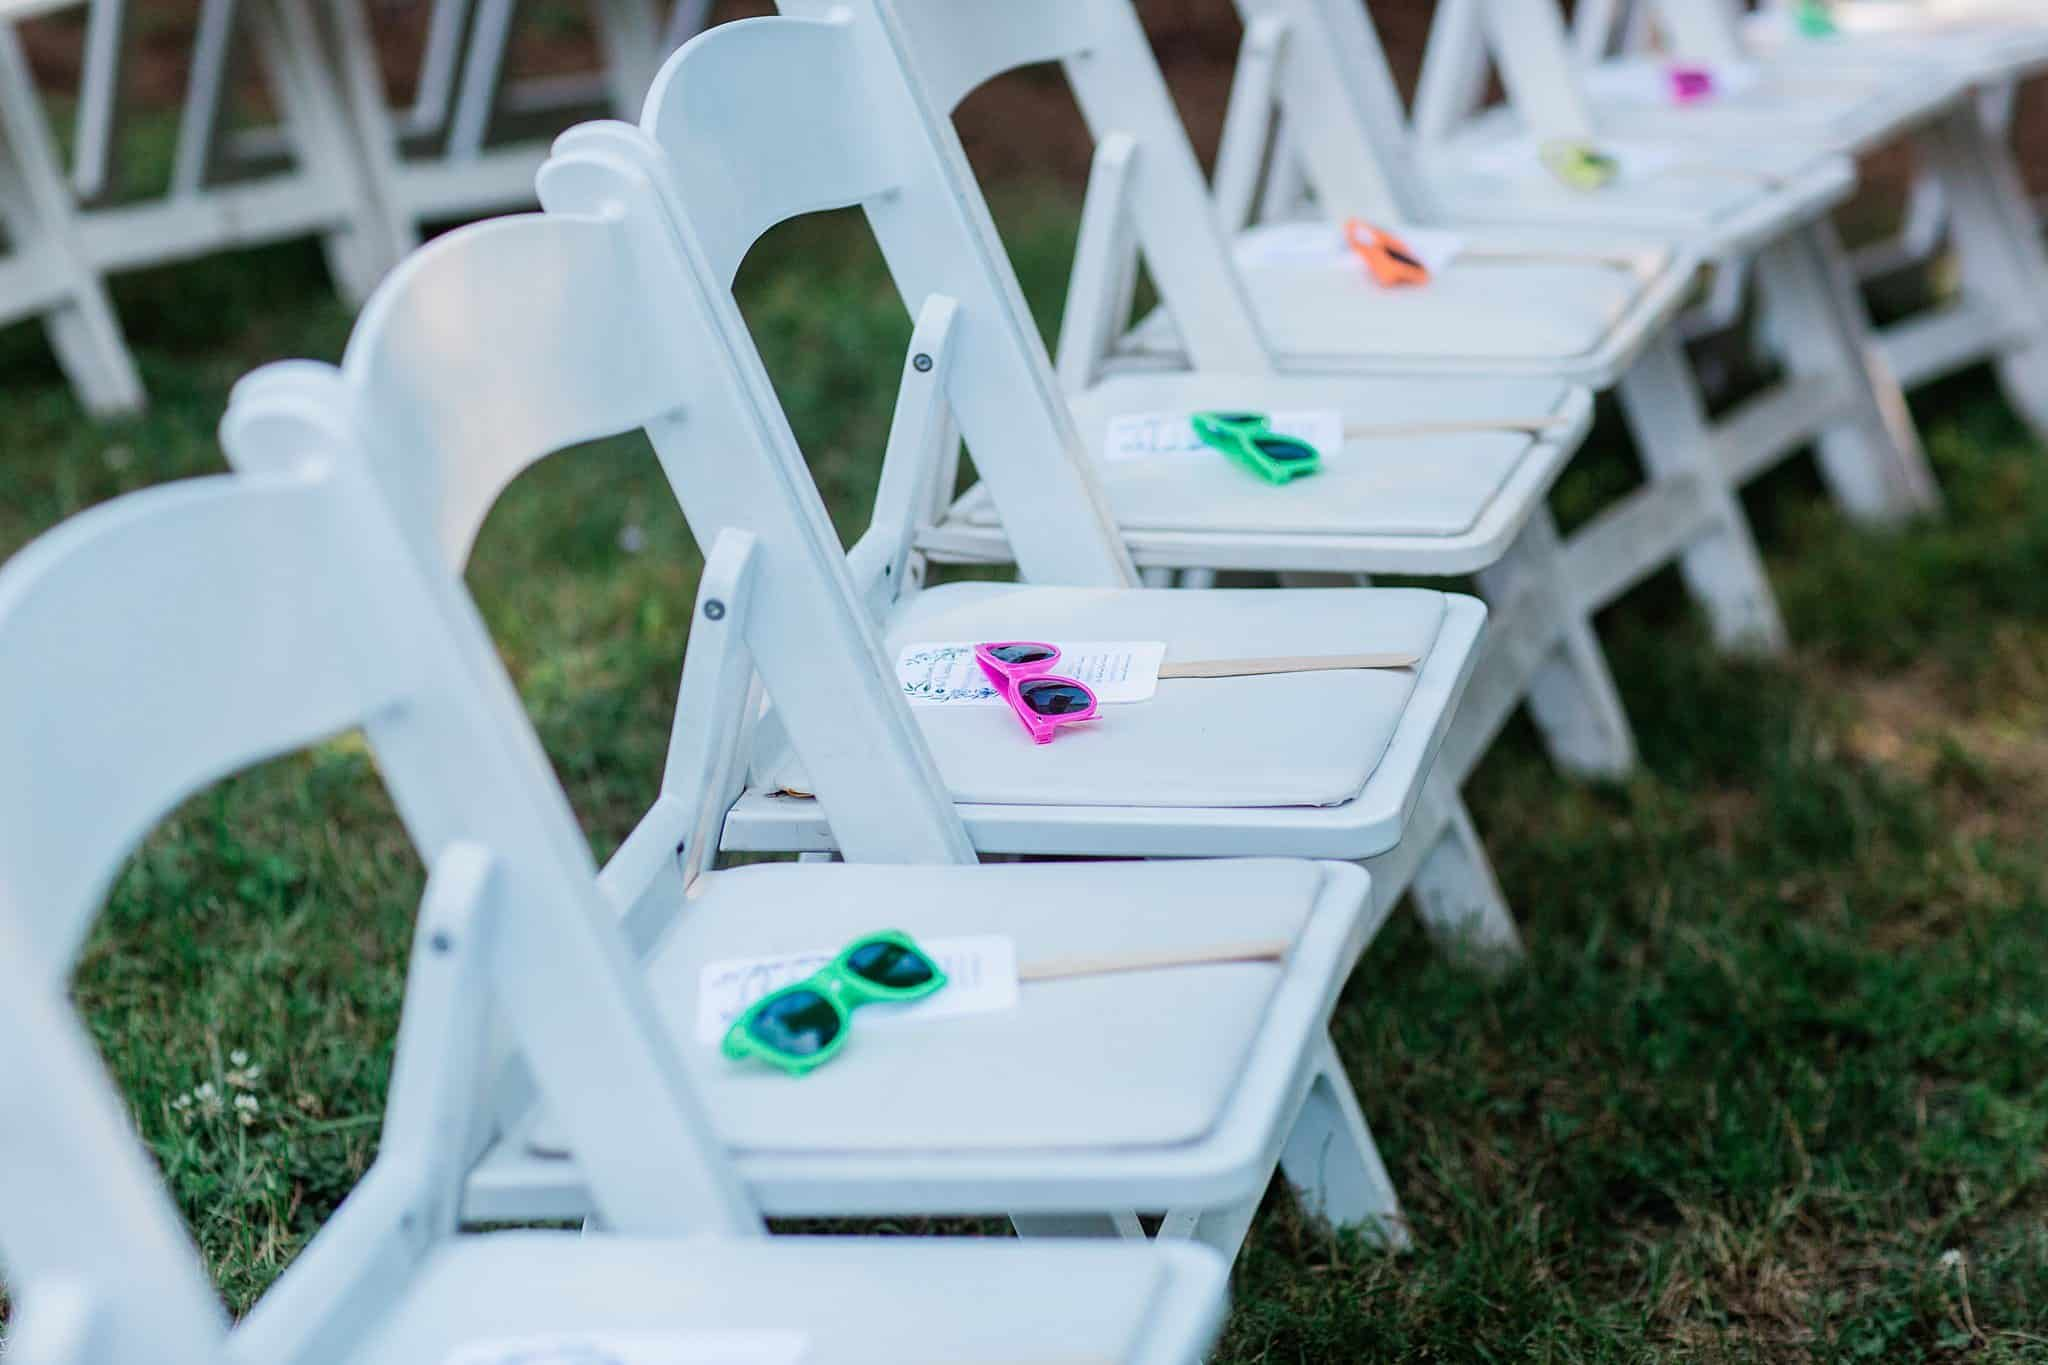 White Folding Chairs at Ceremony with sunglasses and fan for the heat outdoors